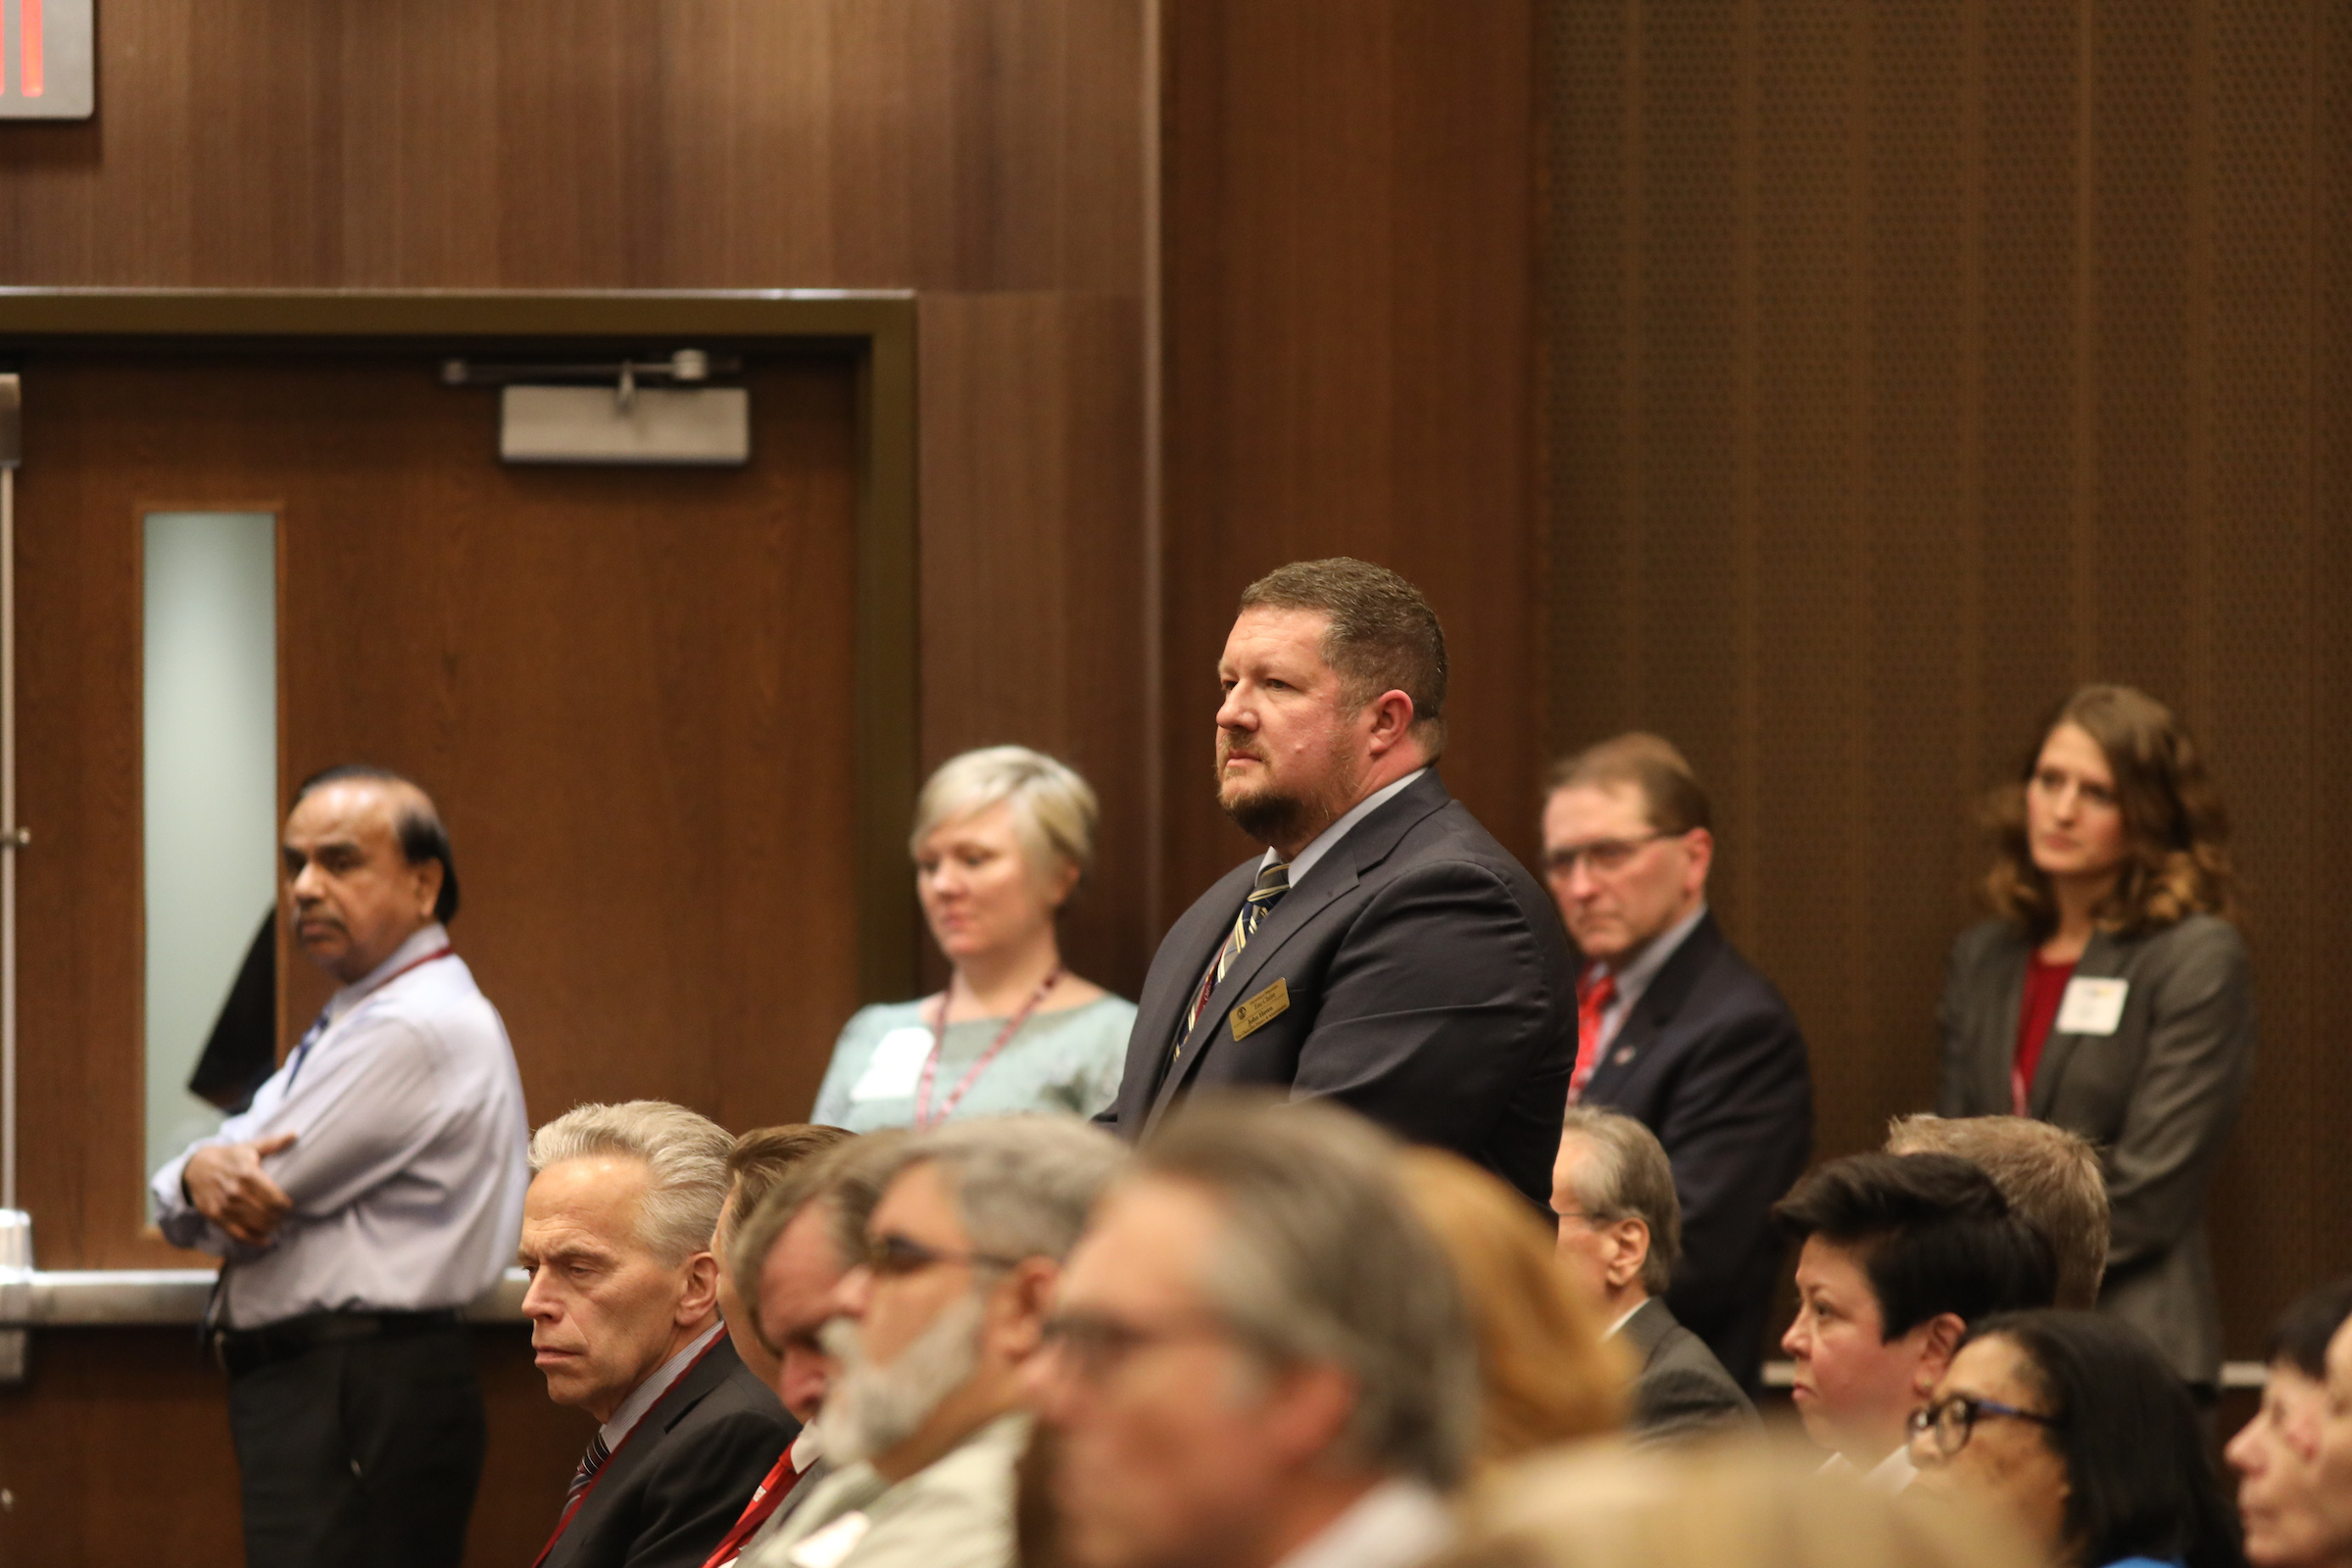 Photo of John Haven, III, who joined UW-Eau Claire earlier this fall as Vice Chancellor of Finance and Administration, being introduced at the UW System Board of Regents meeting hosted by UW-La Crosse on December 6, 2018